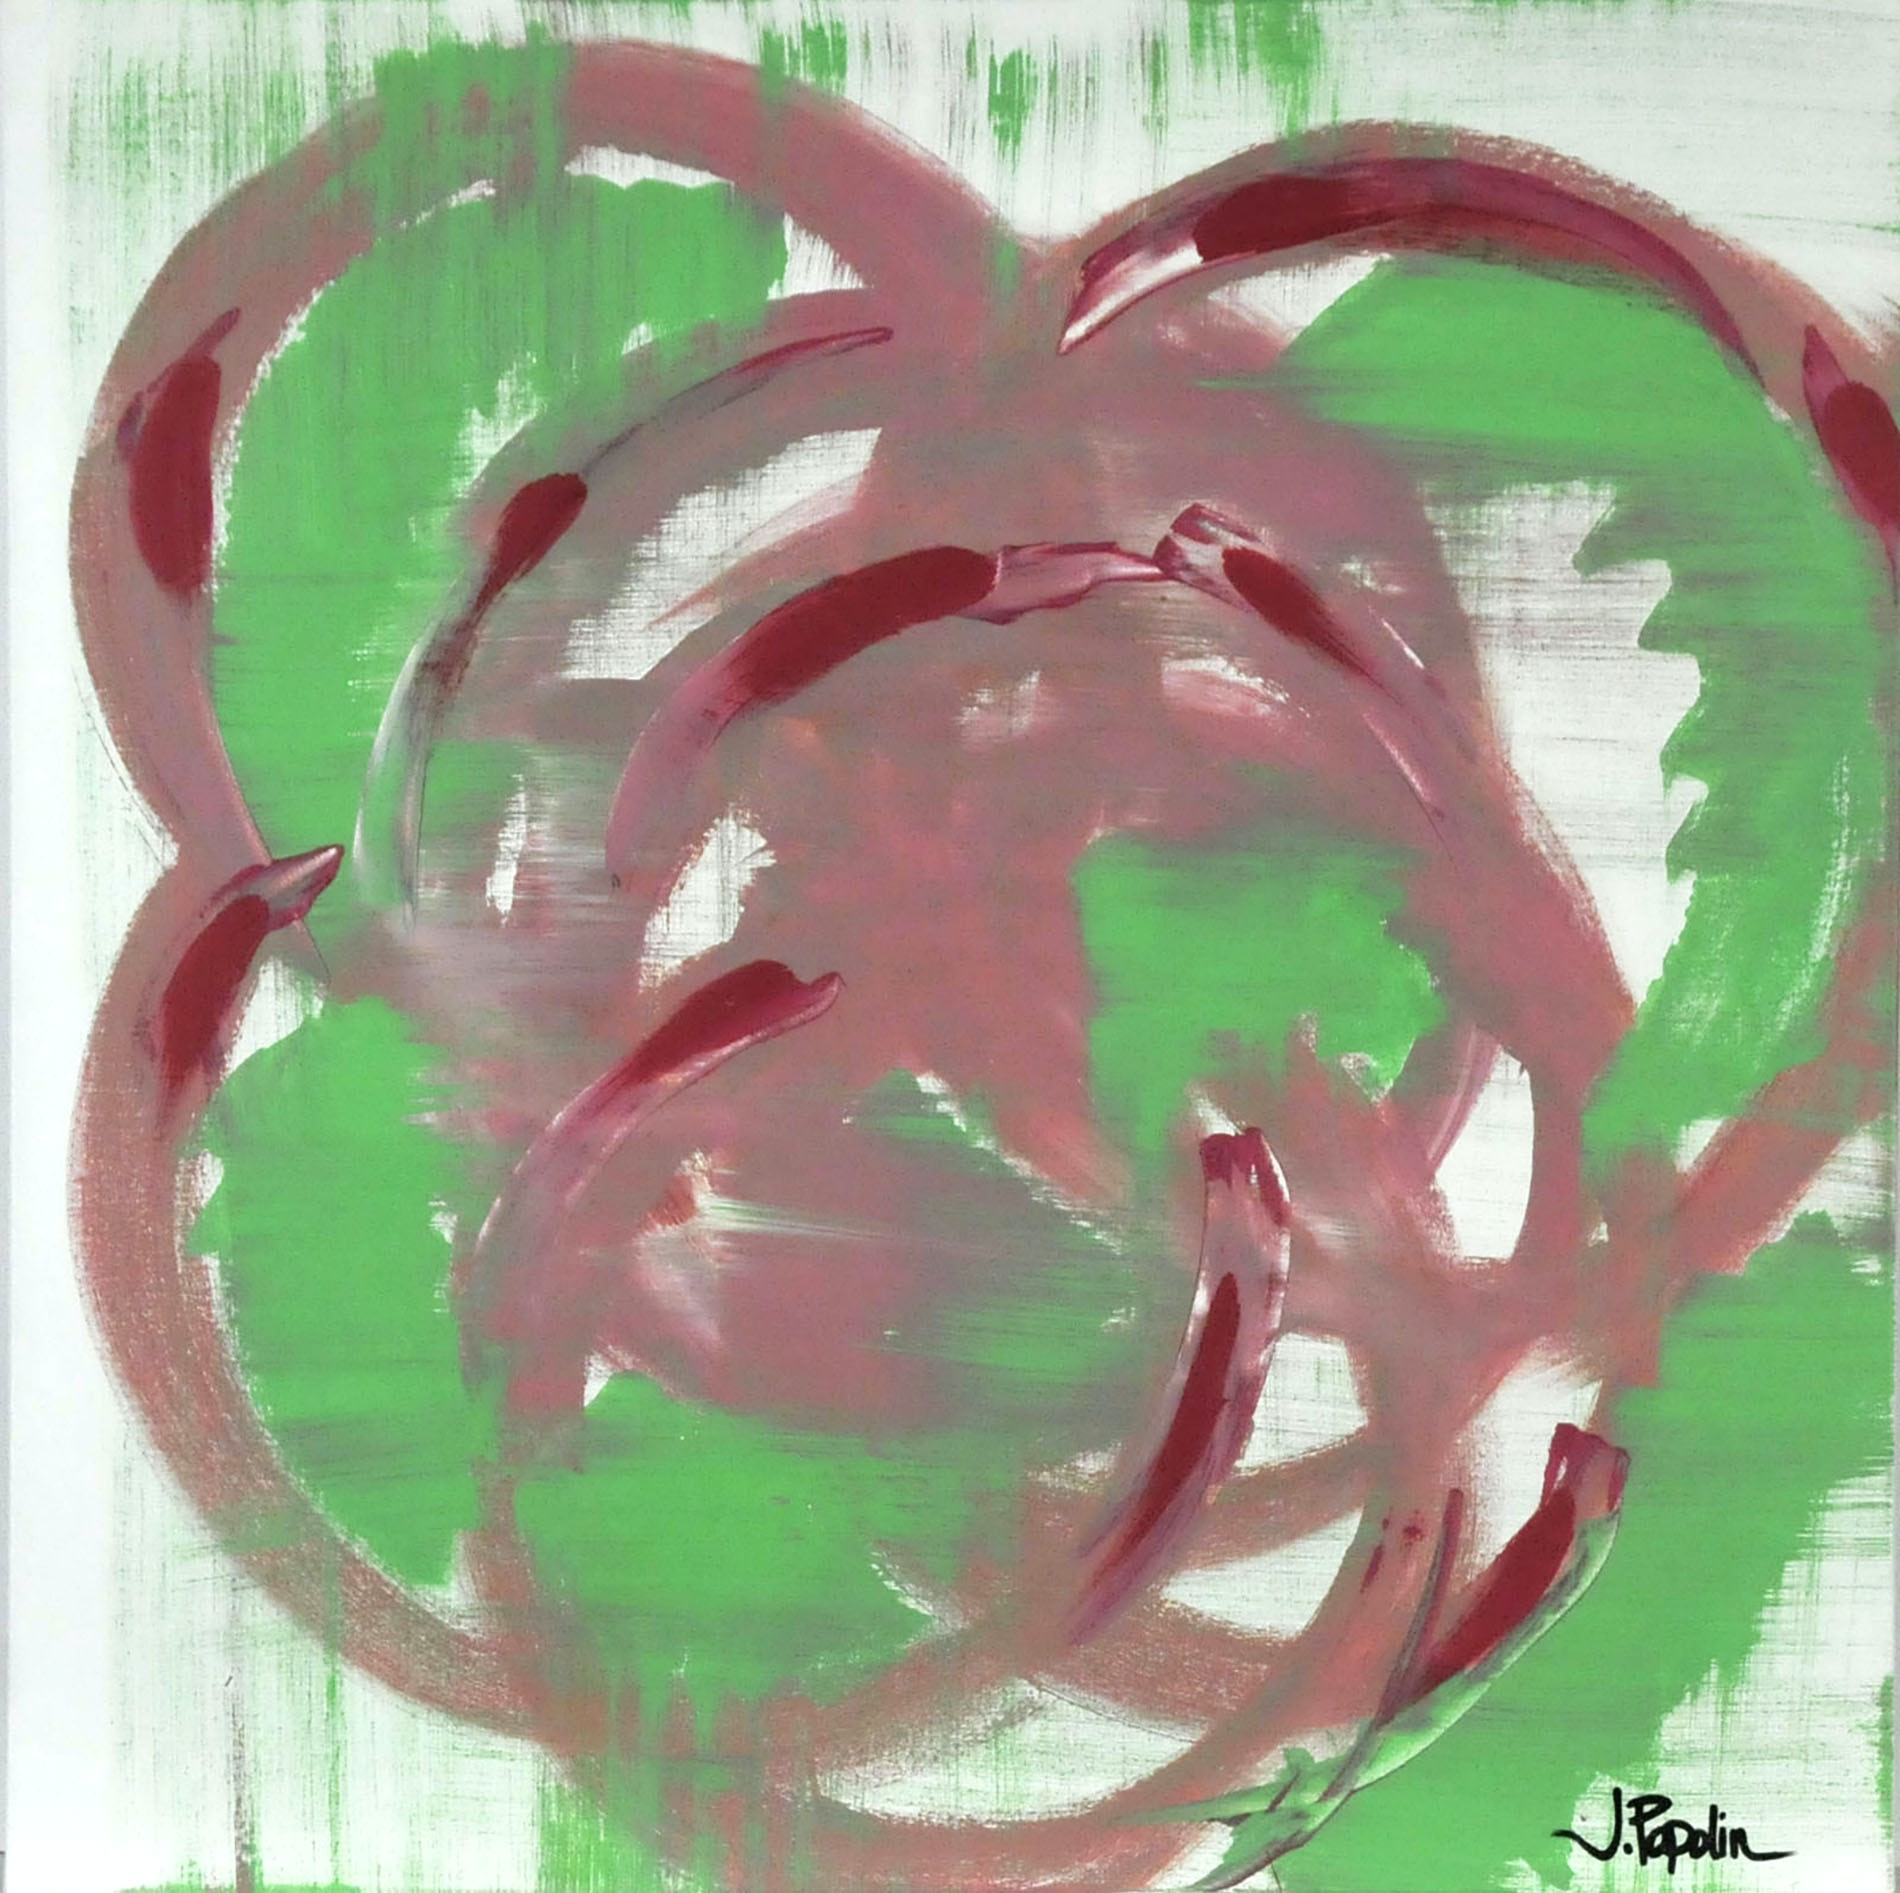 "J. Popolin Original Acrylic on Canvas ""Green, Pink and Red Swirls"""